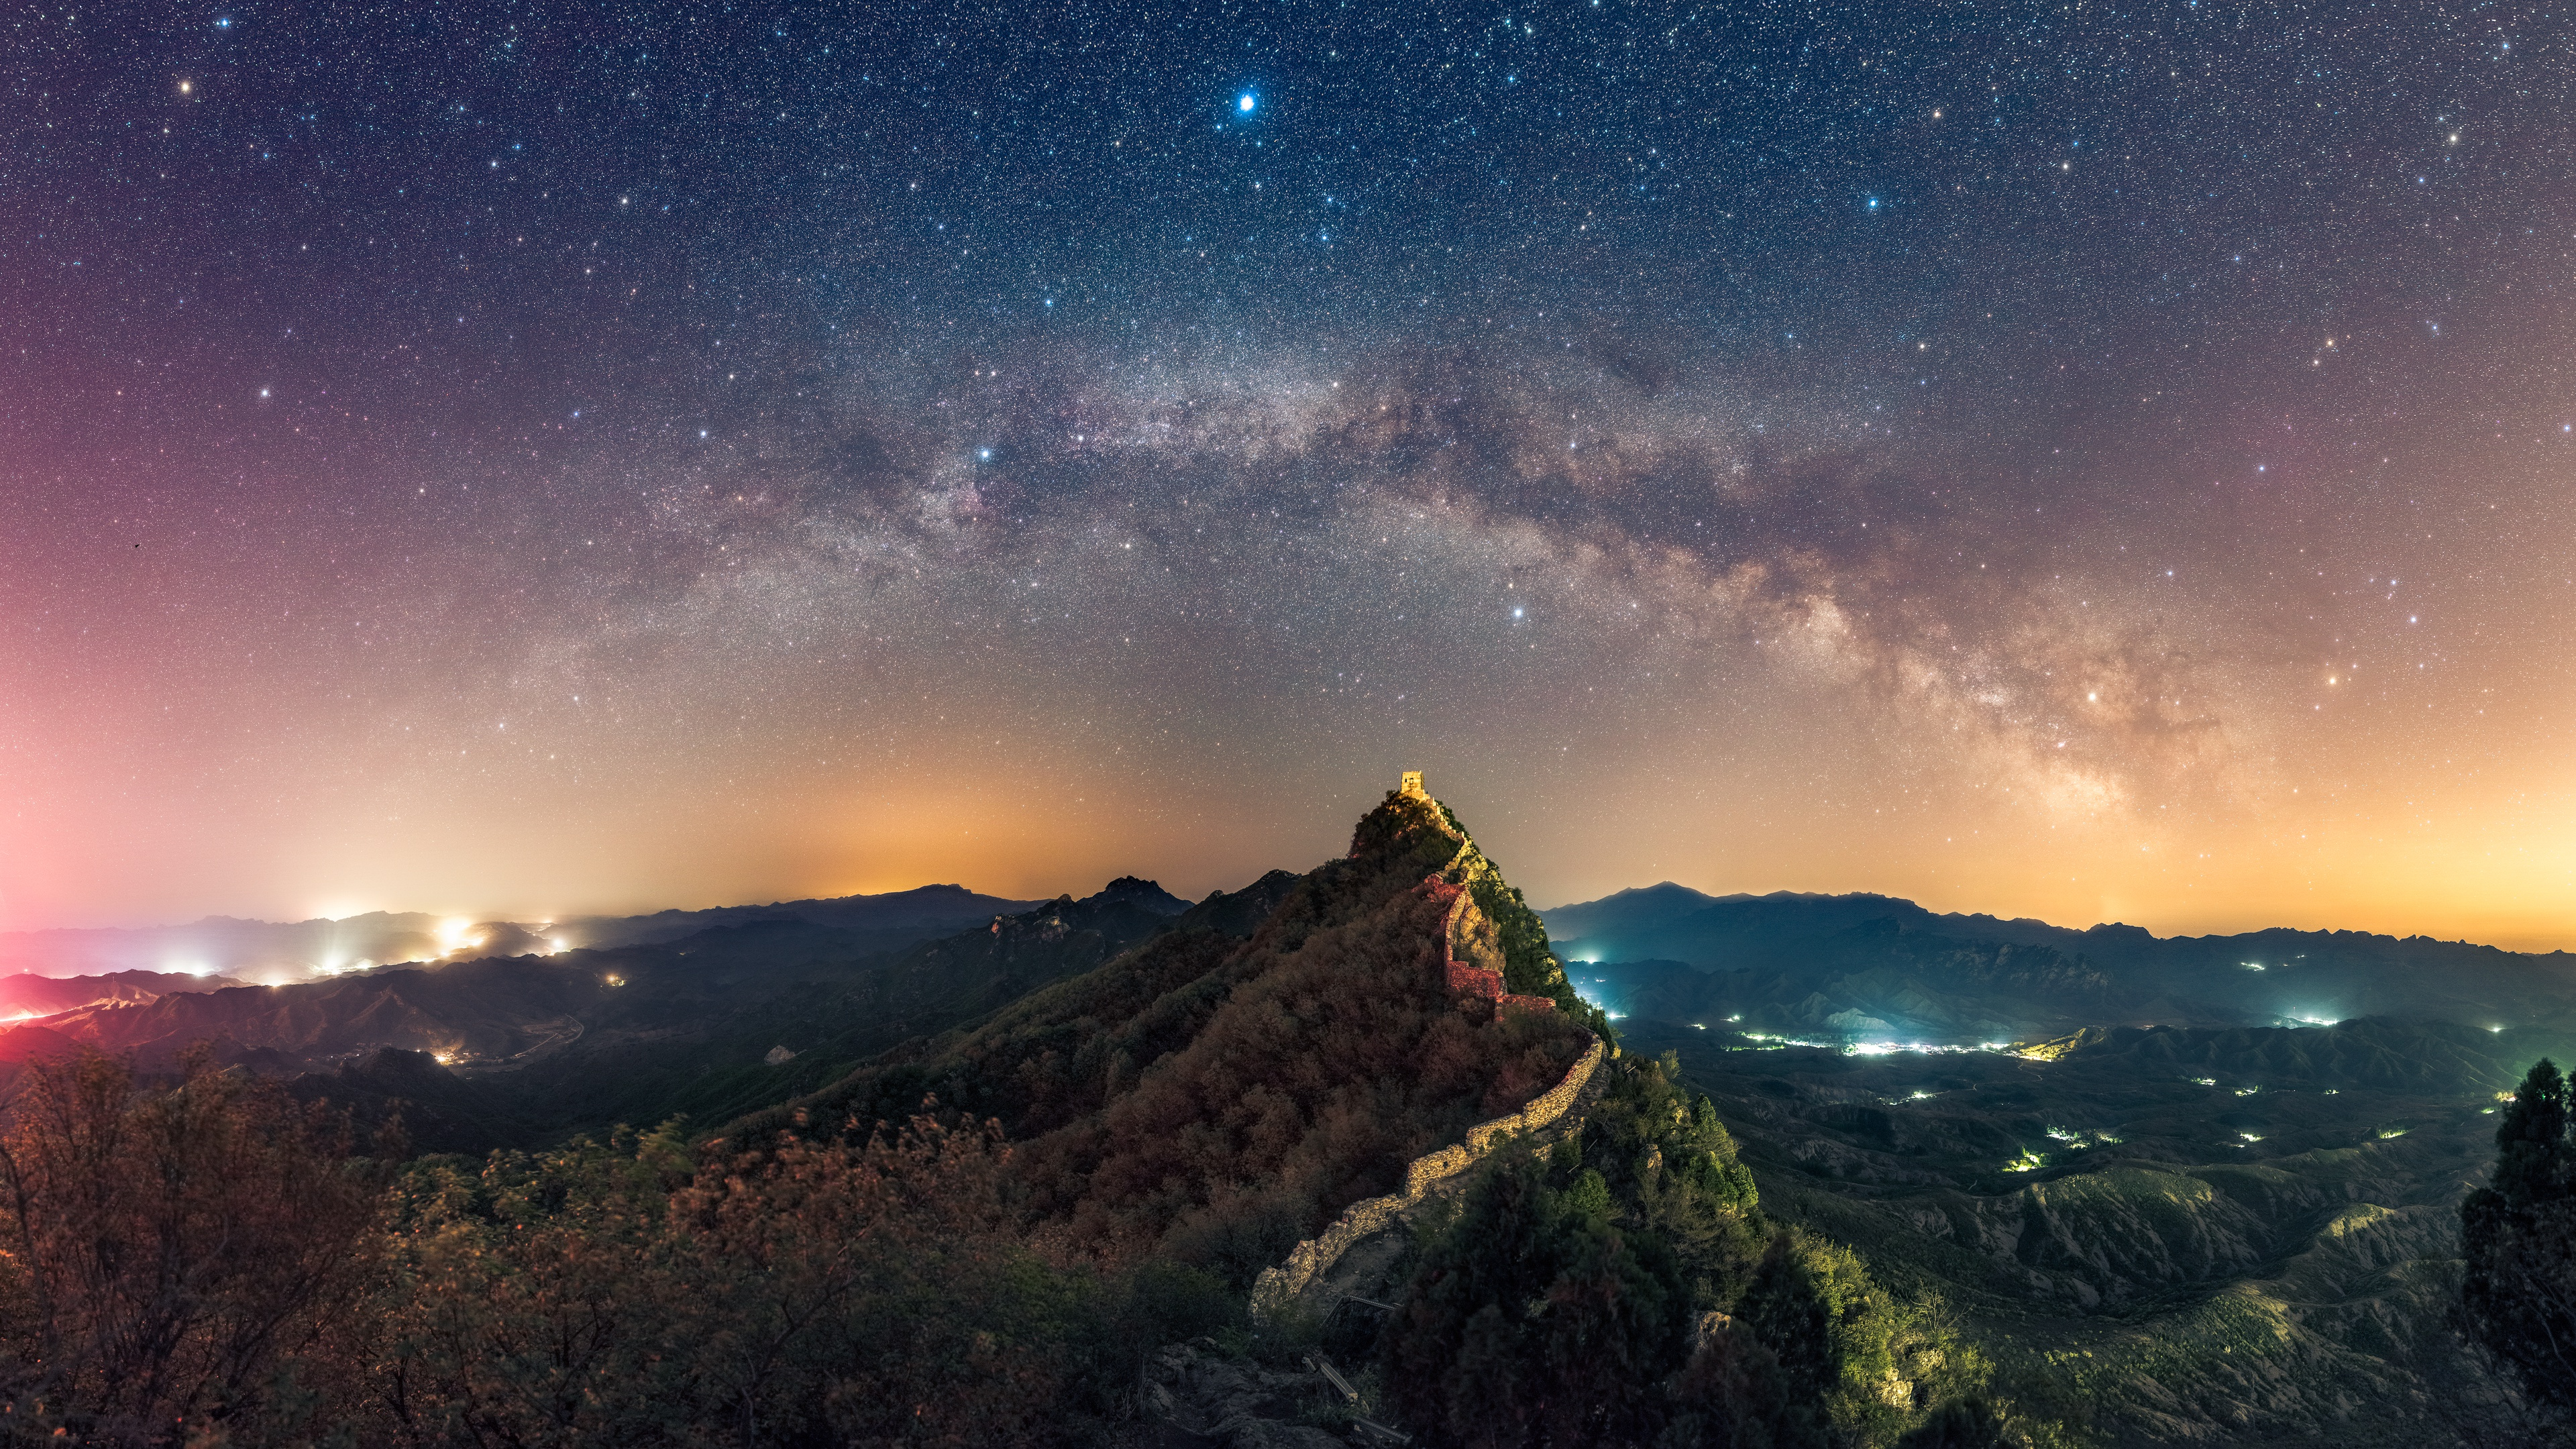 Wallpaper Stars Nature Mountains The Great Wall of China 3840x2160 3840x2160